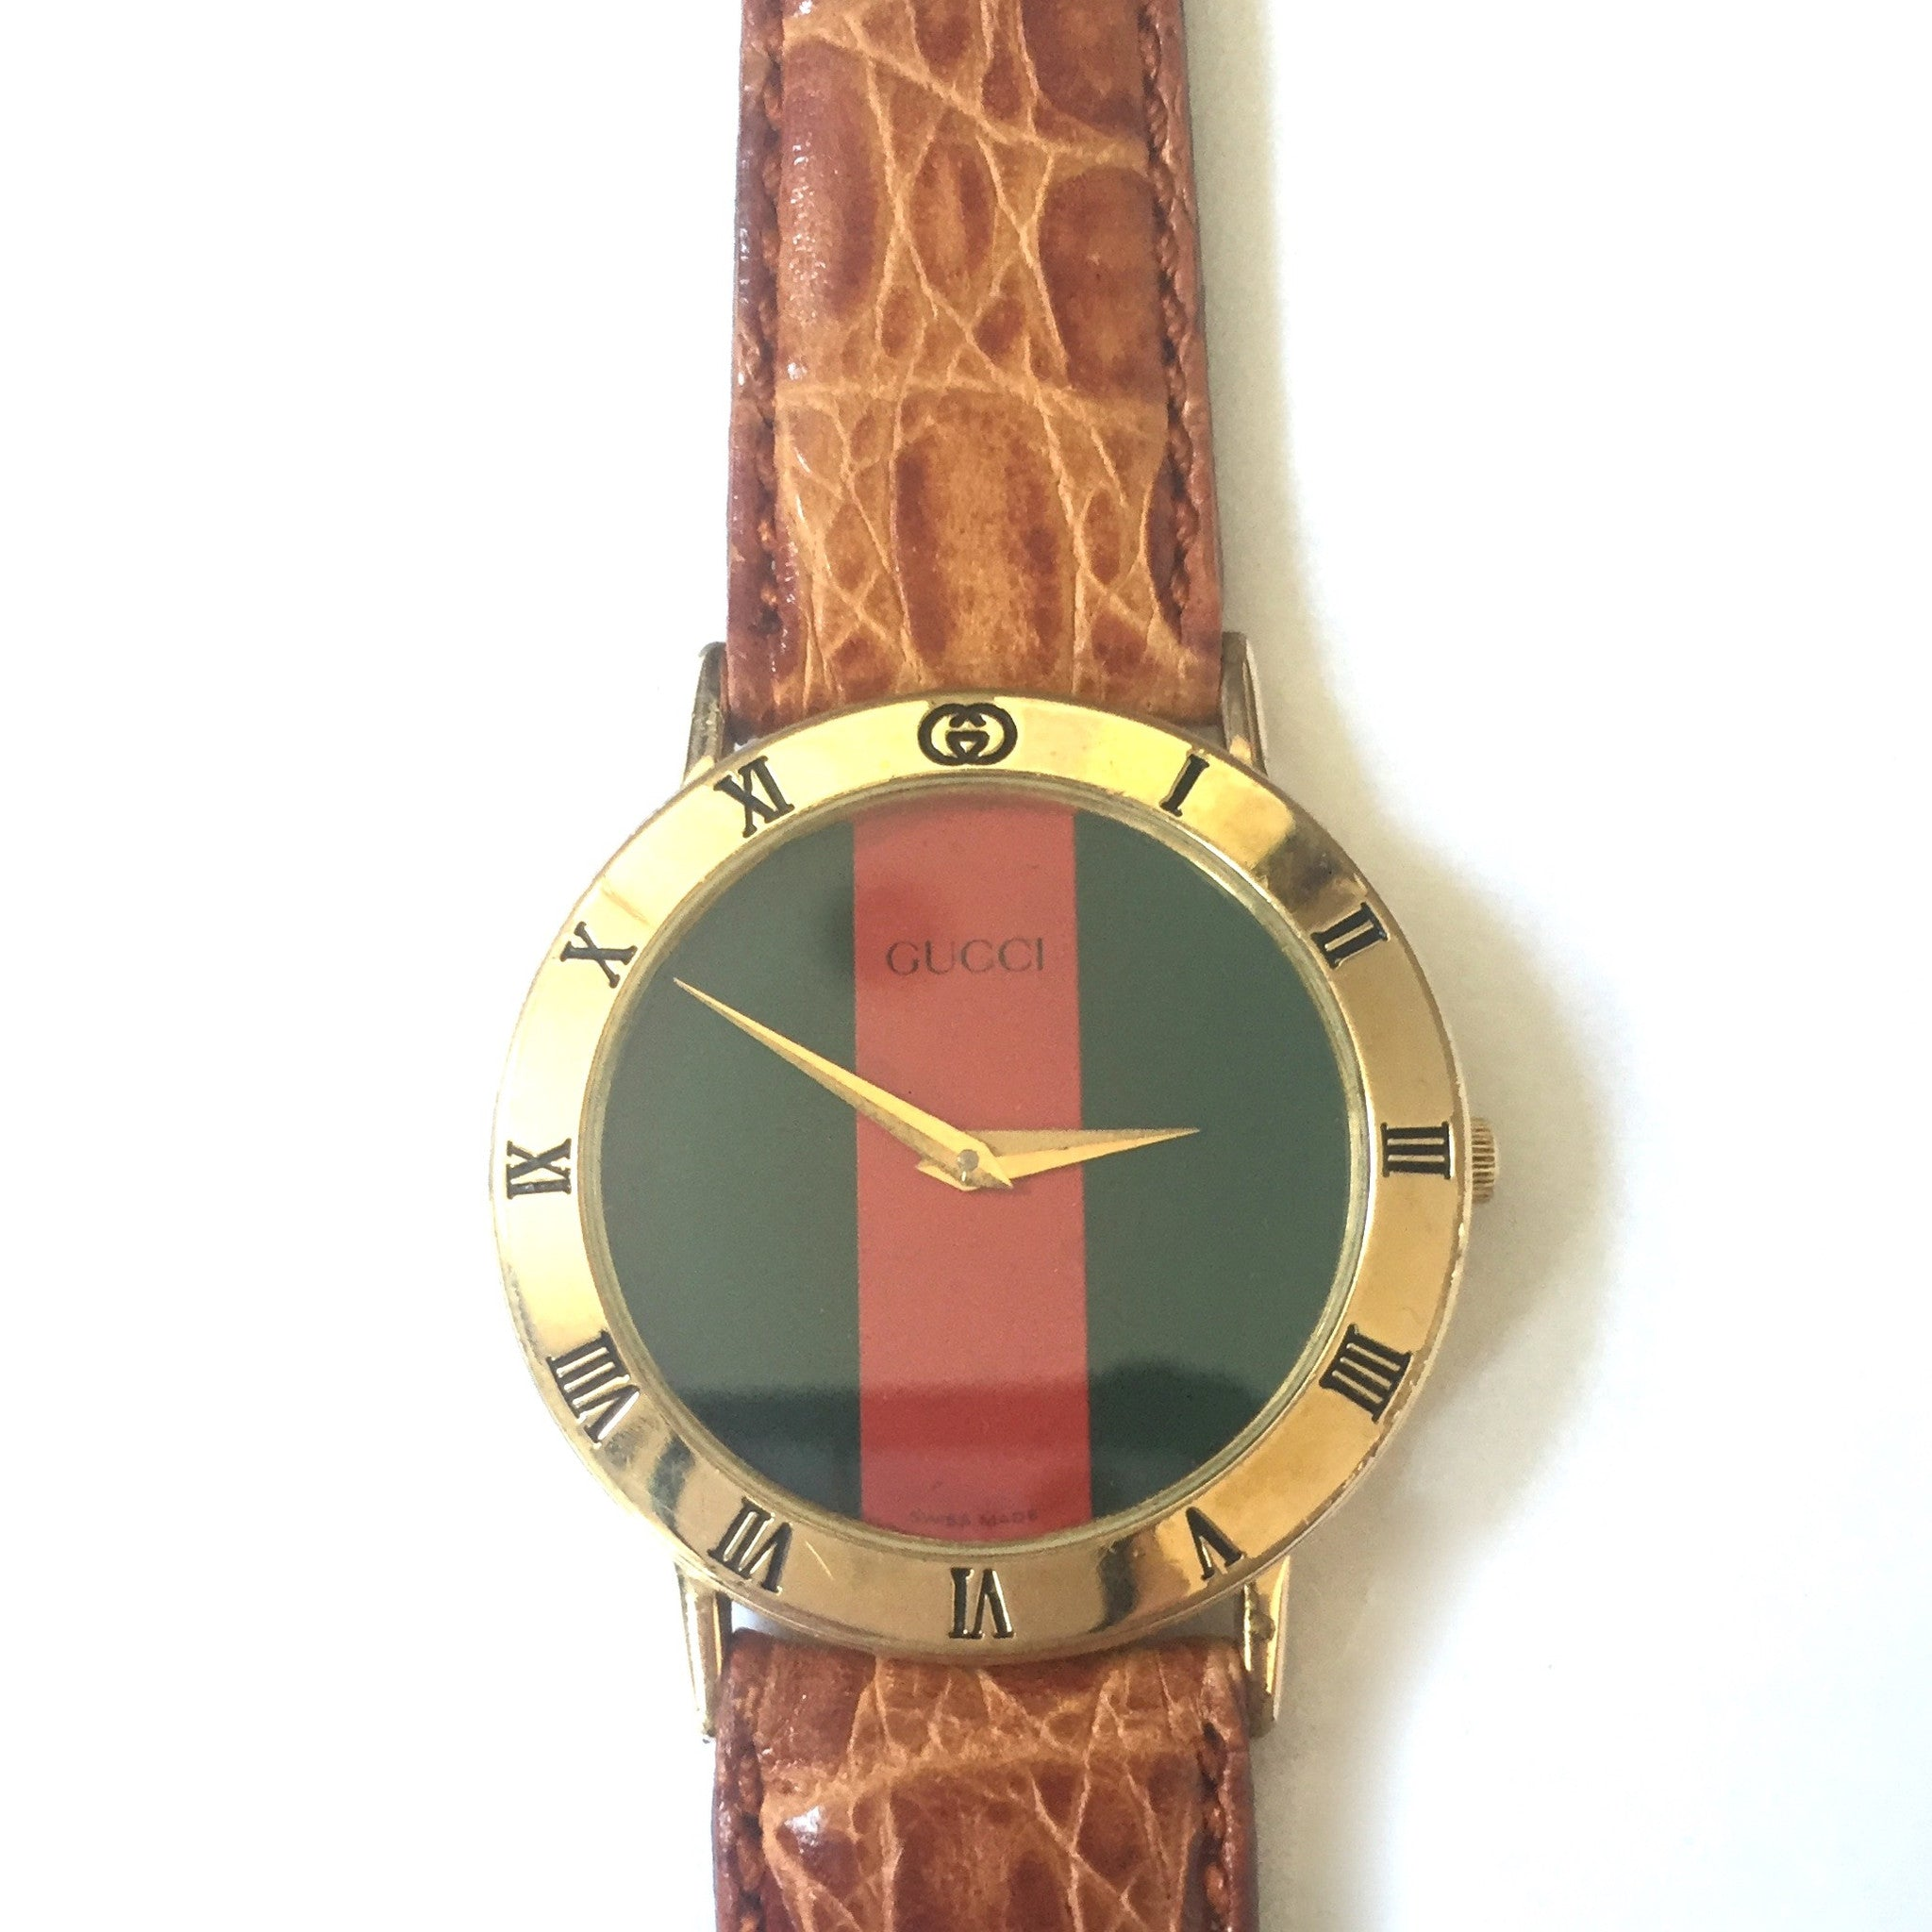 Gucci - Men's 3000M Web Stripe Watch